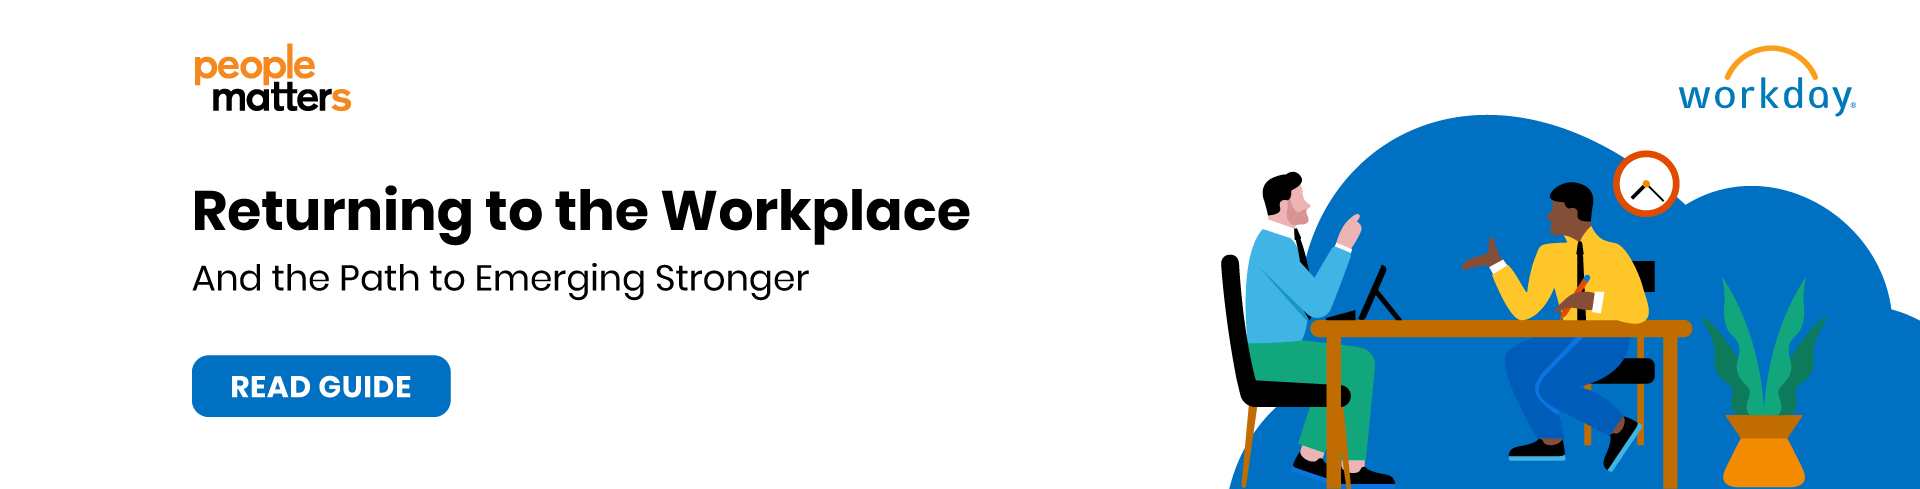 Returning to the Workplace and Emerging Stronger